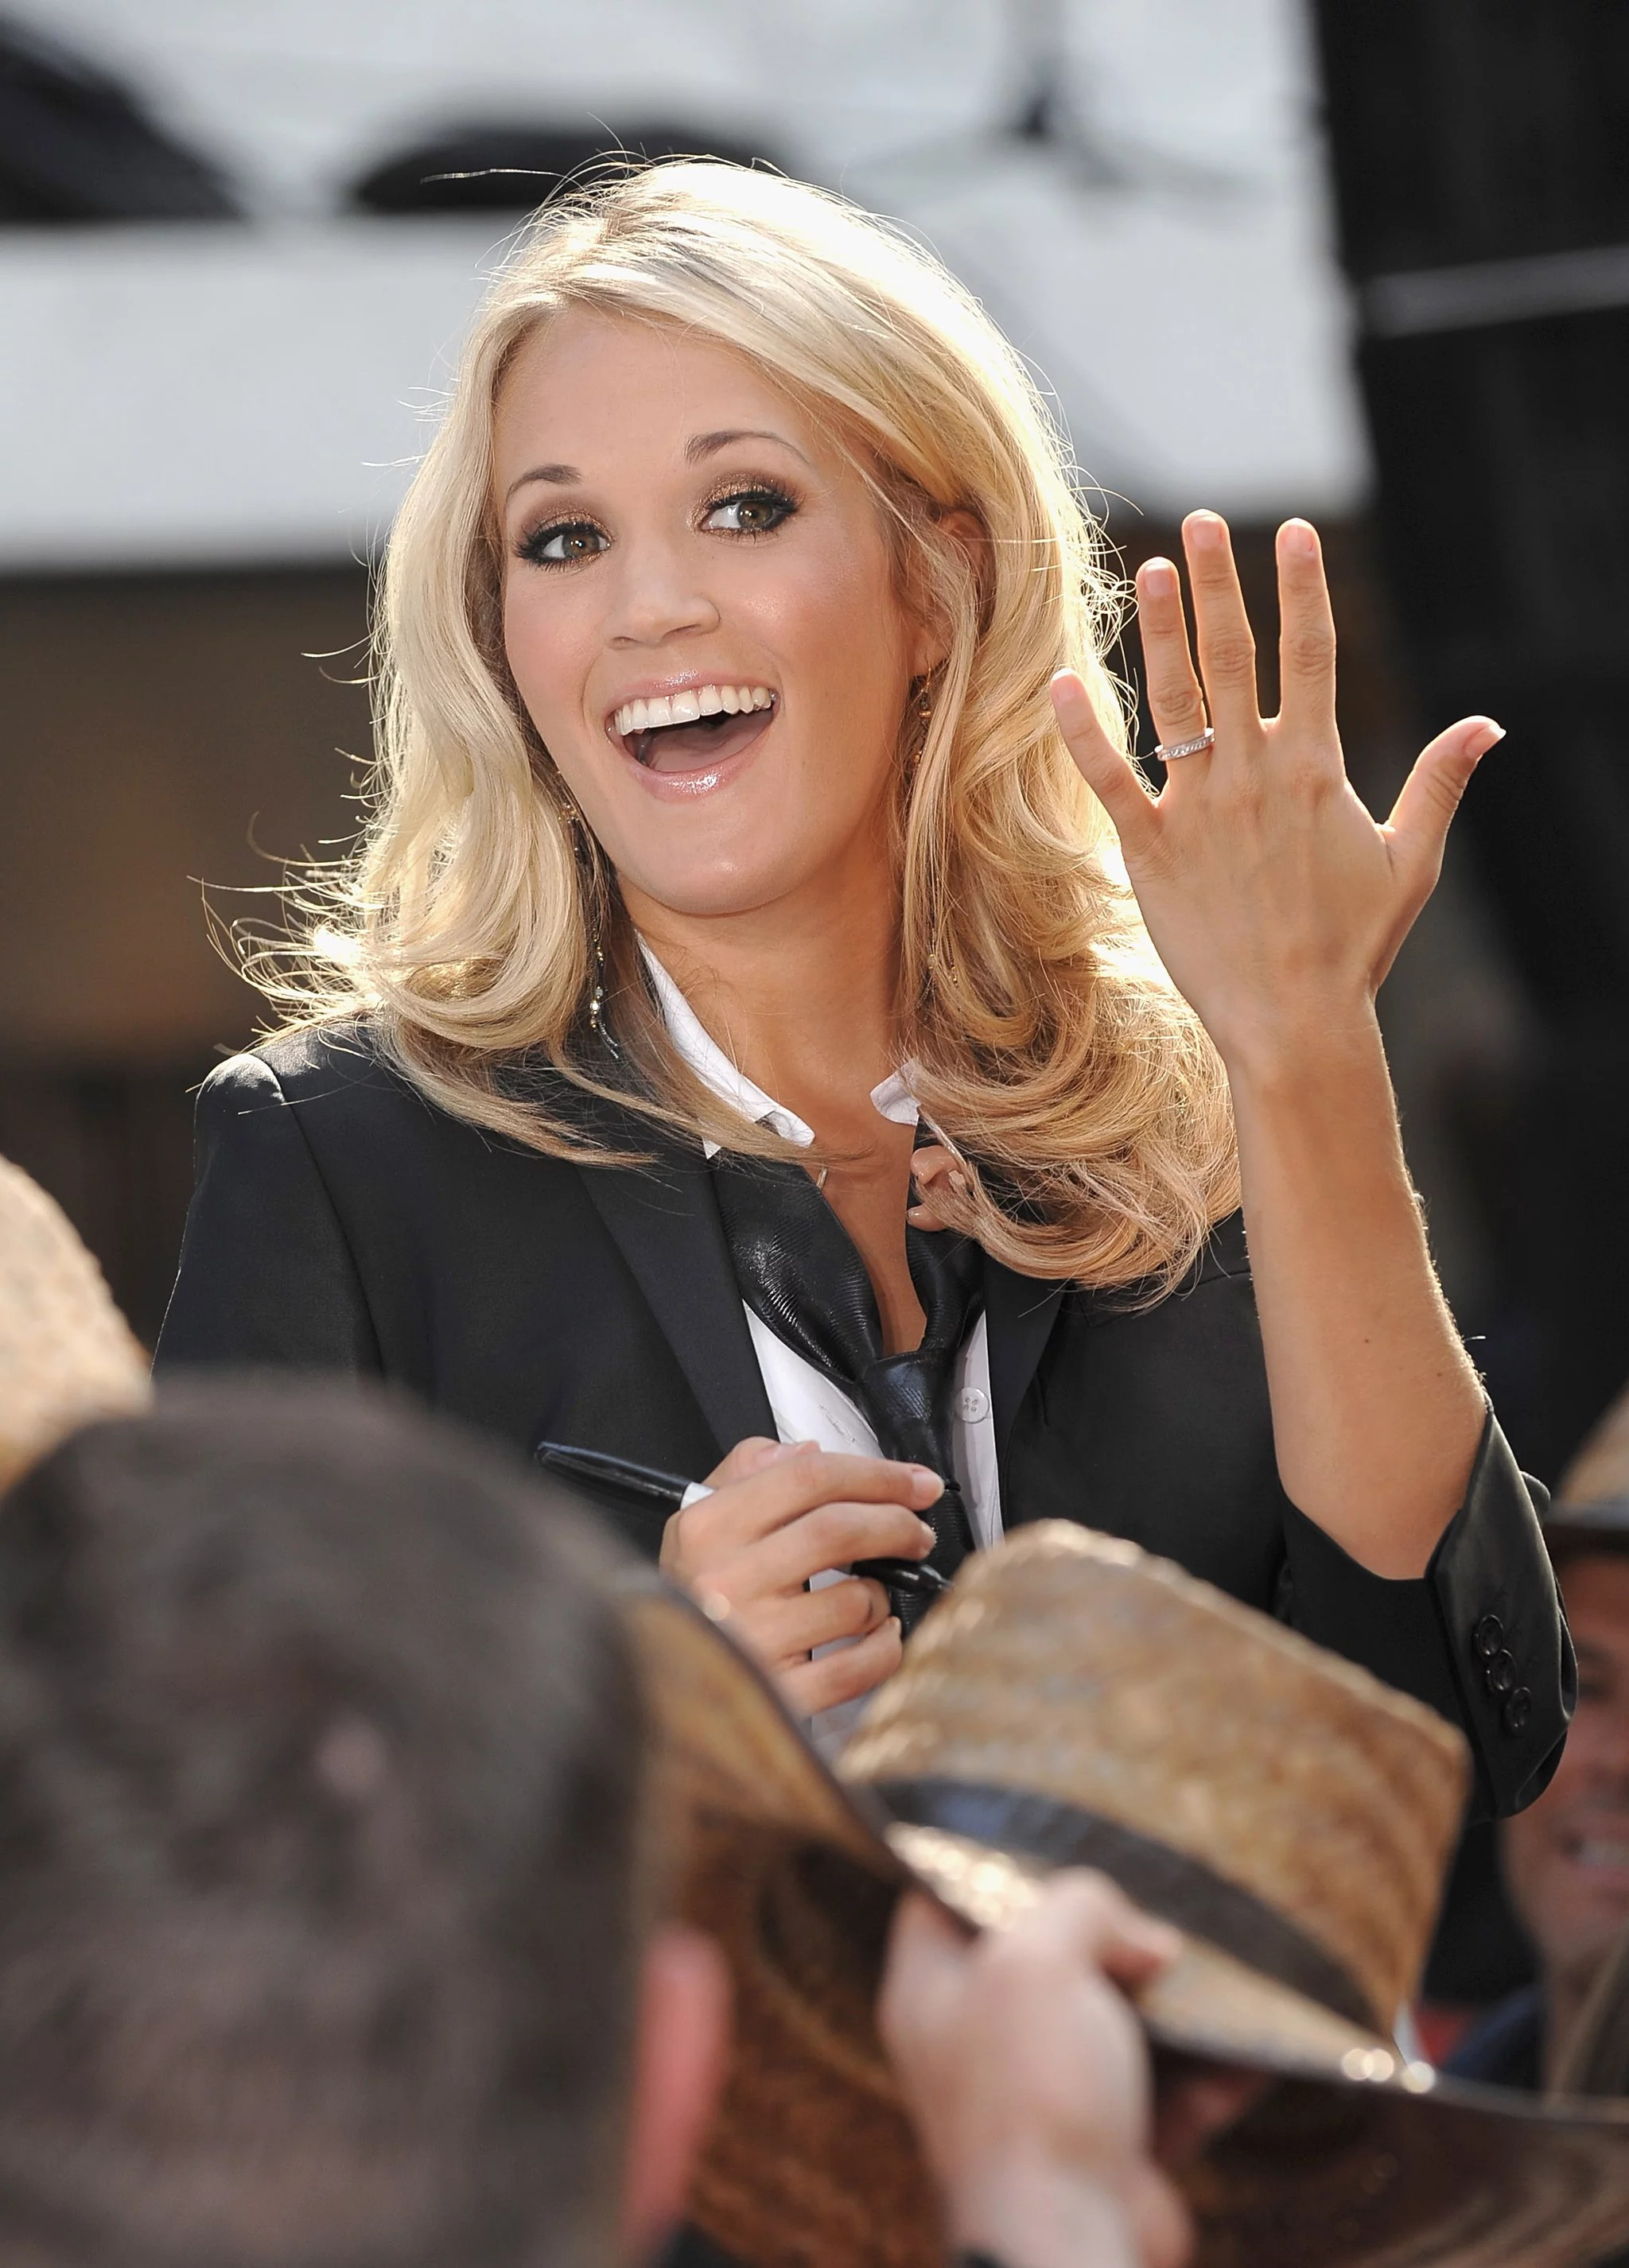 Carrie Underwood Flashing Her Engagement Ring On The Today